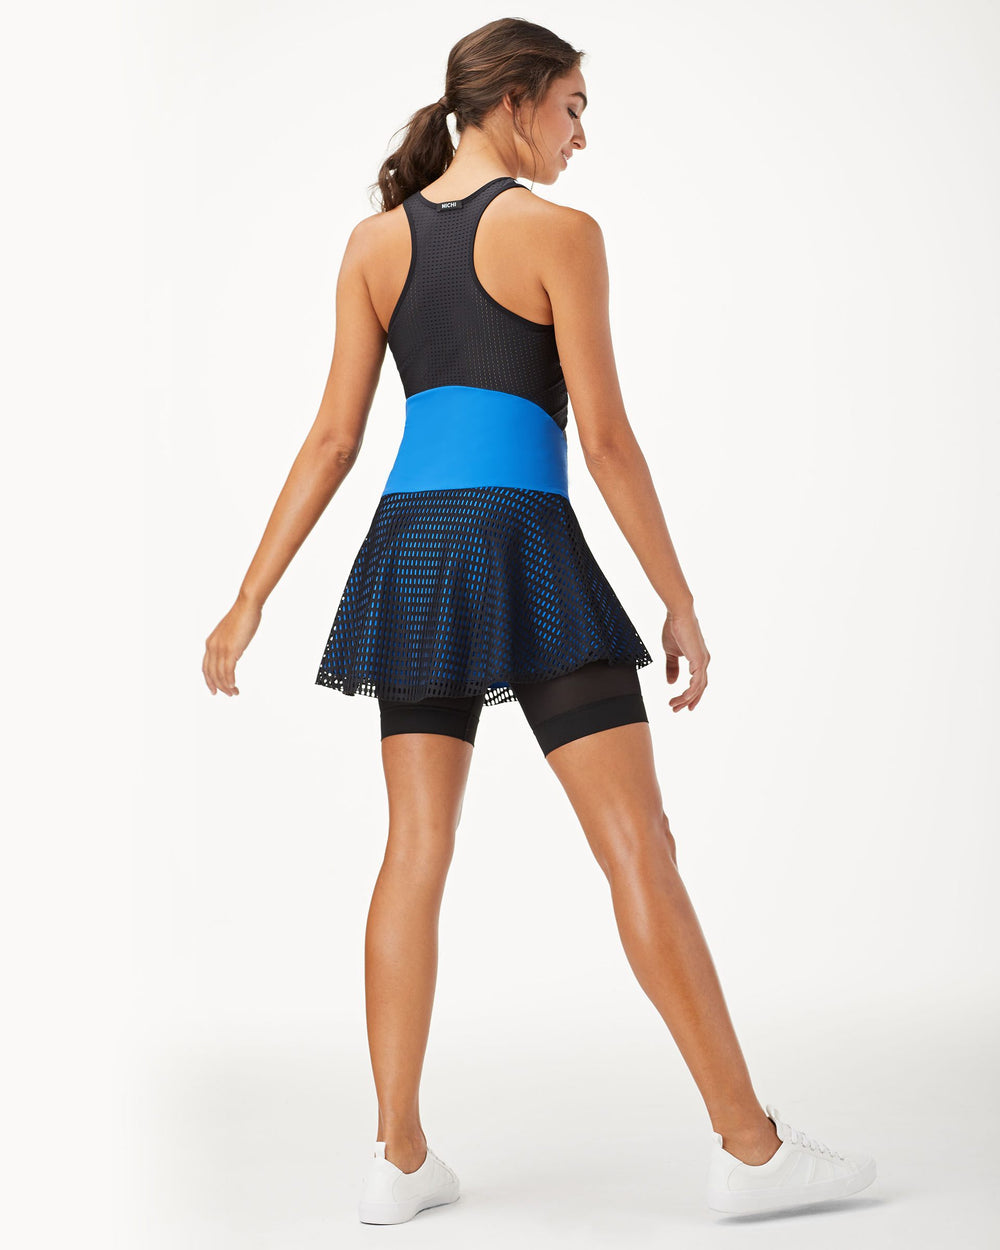 Drop Tennis Dress - White/Black/Adriatic Blue